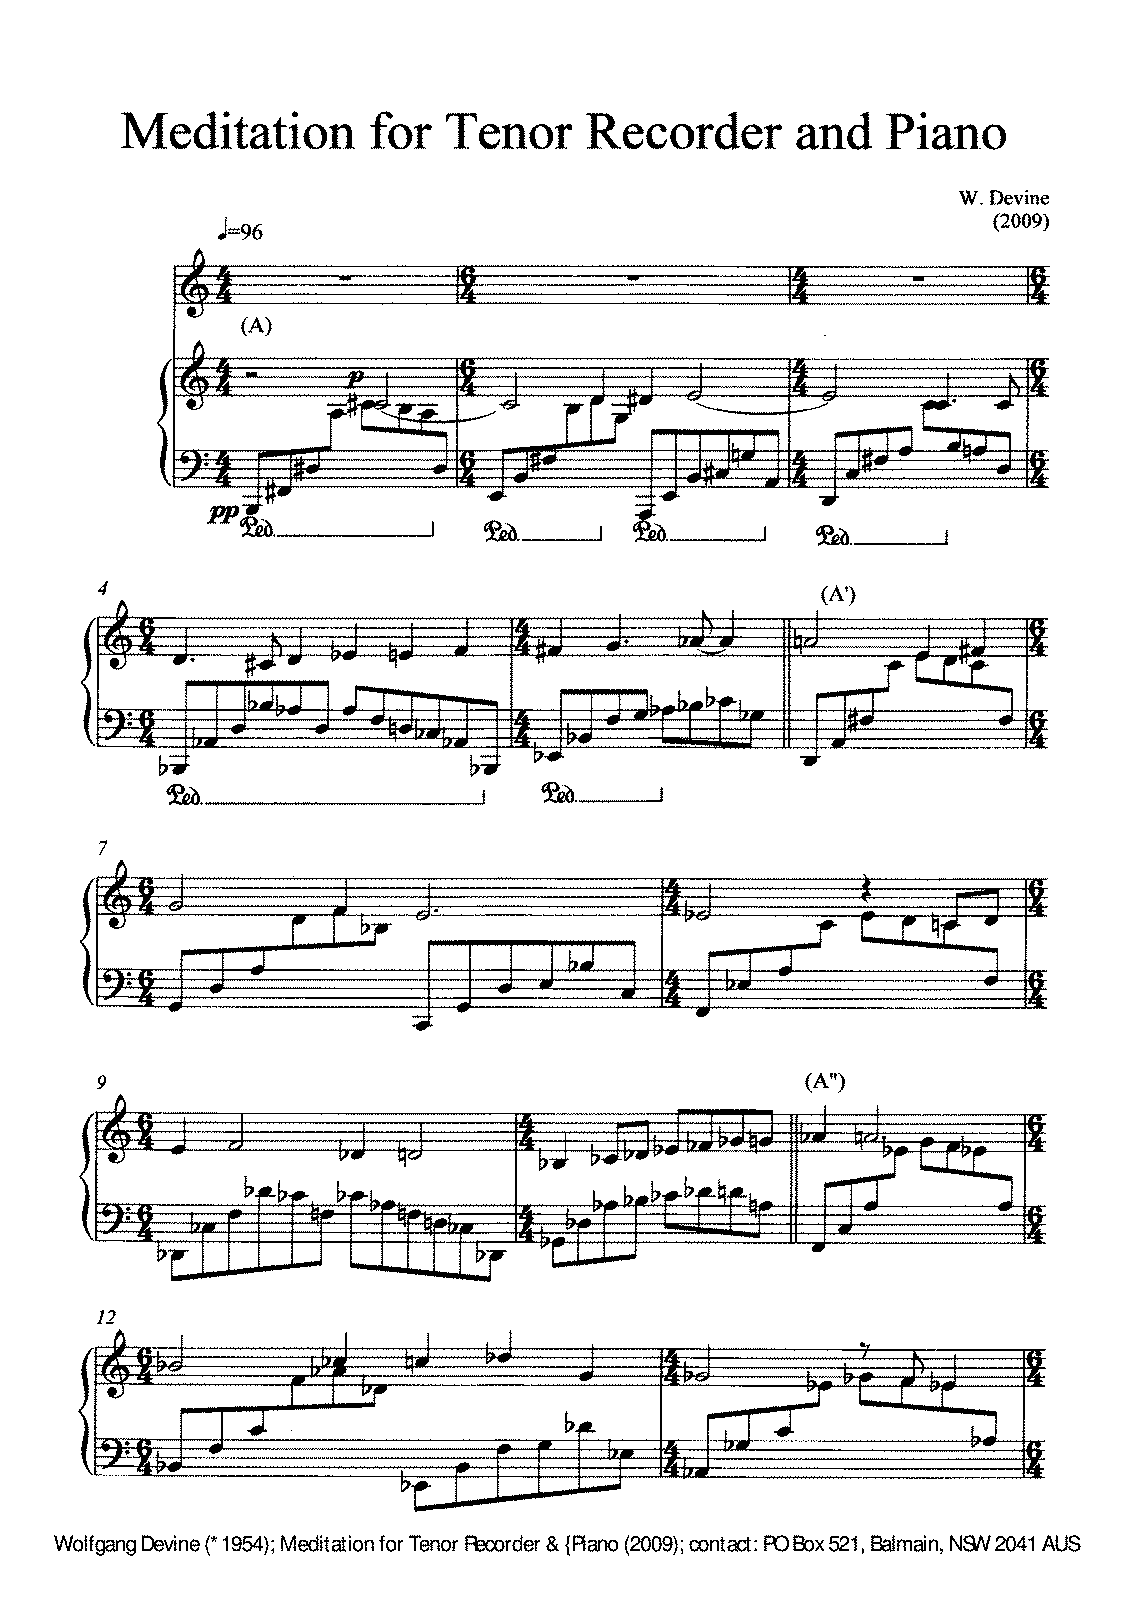 PMLP208804-Devine Wolfgang Tenor Recorder Piano Meditation 2009.pdf